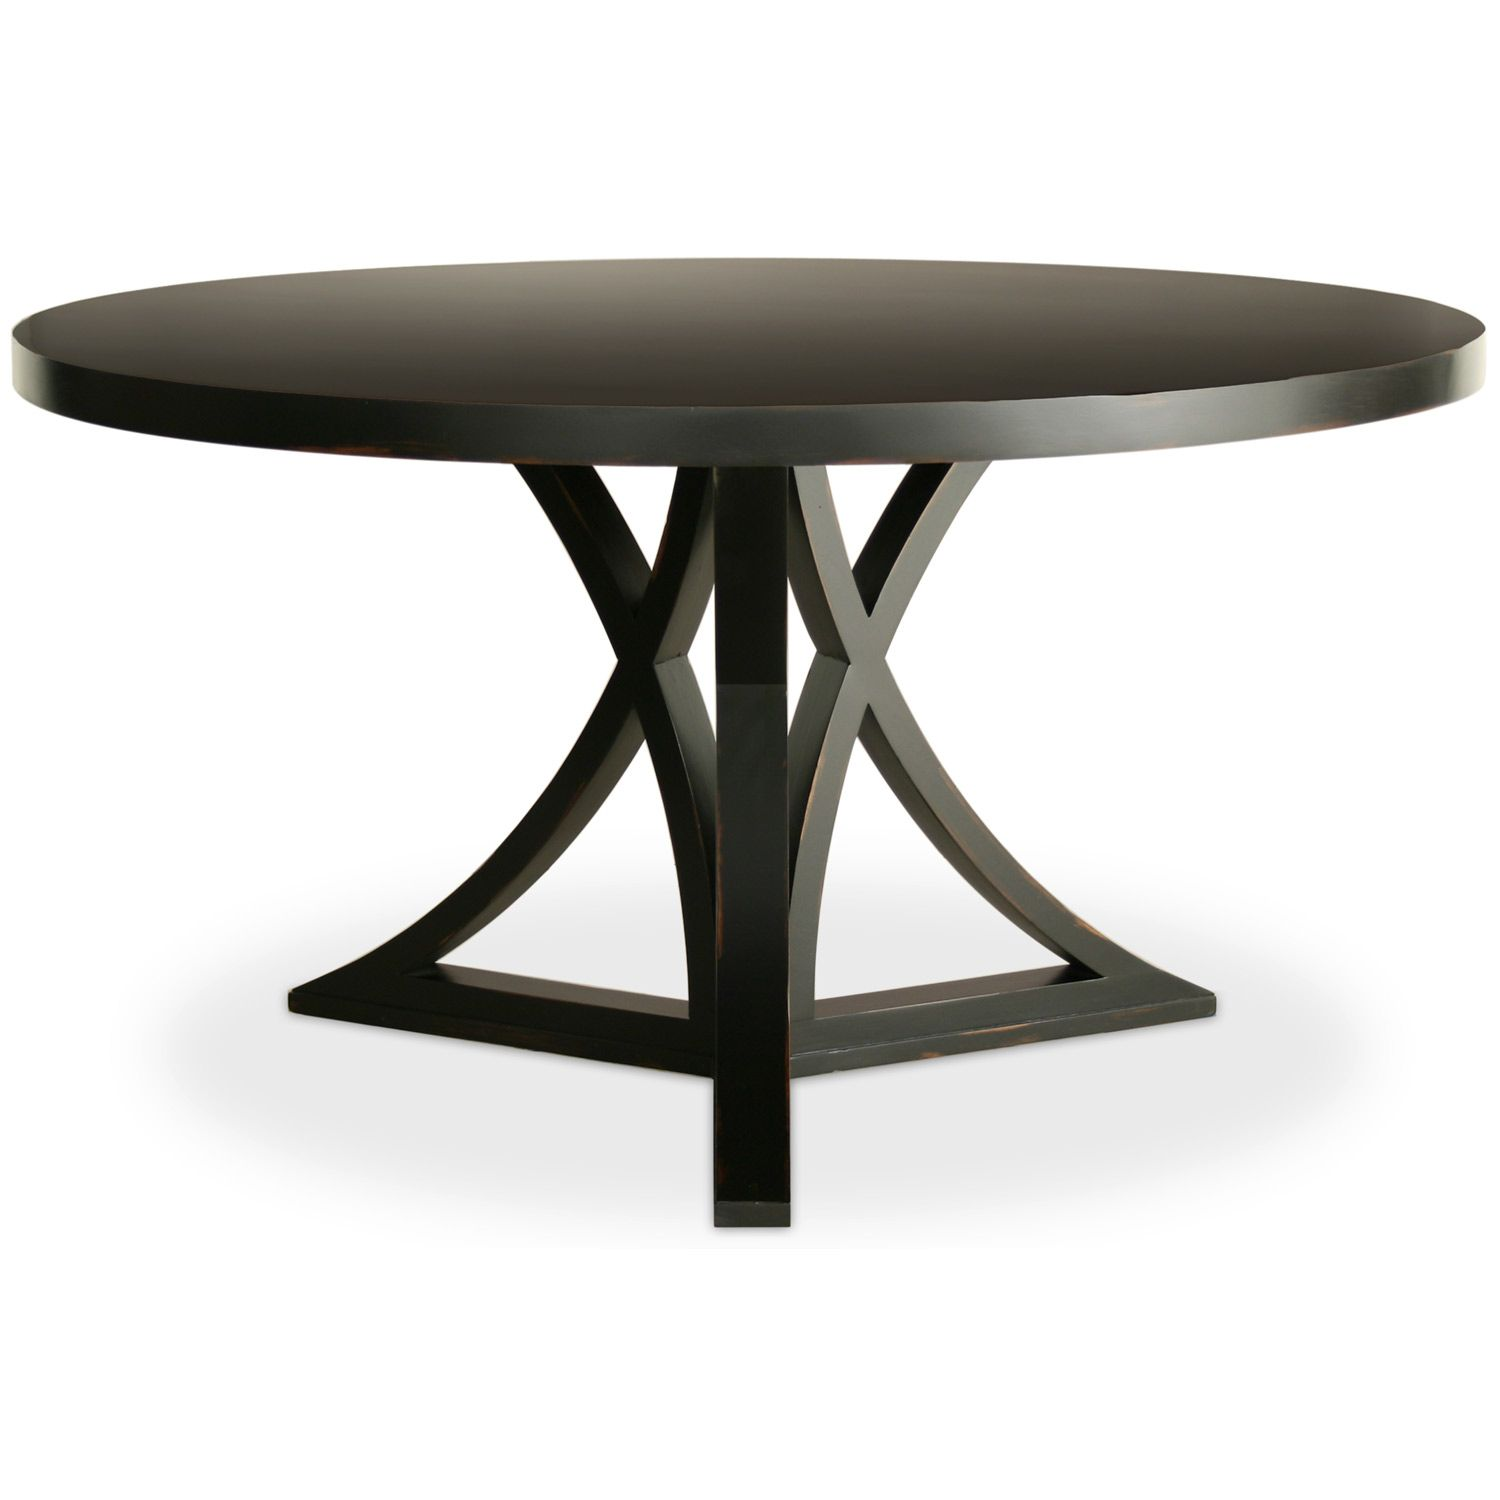 Modern round wood dining table - 60 Round Dining Set With Leaf Sophia Round Dining Table